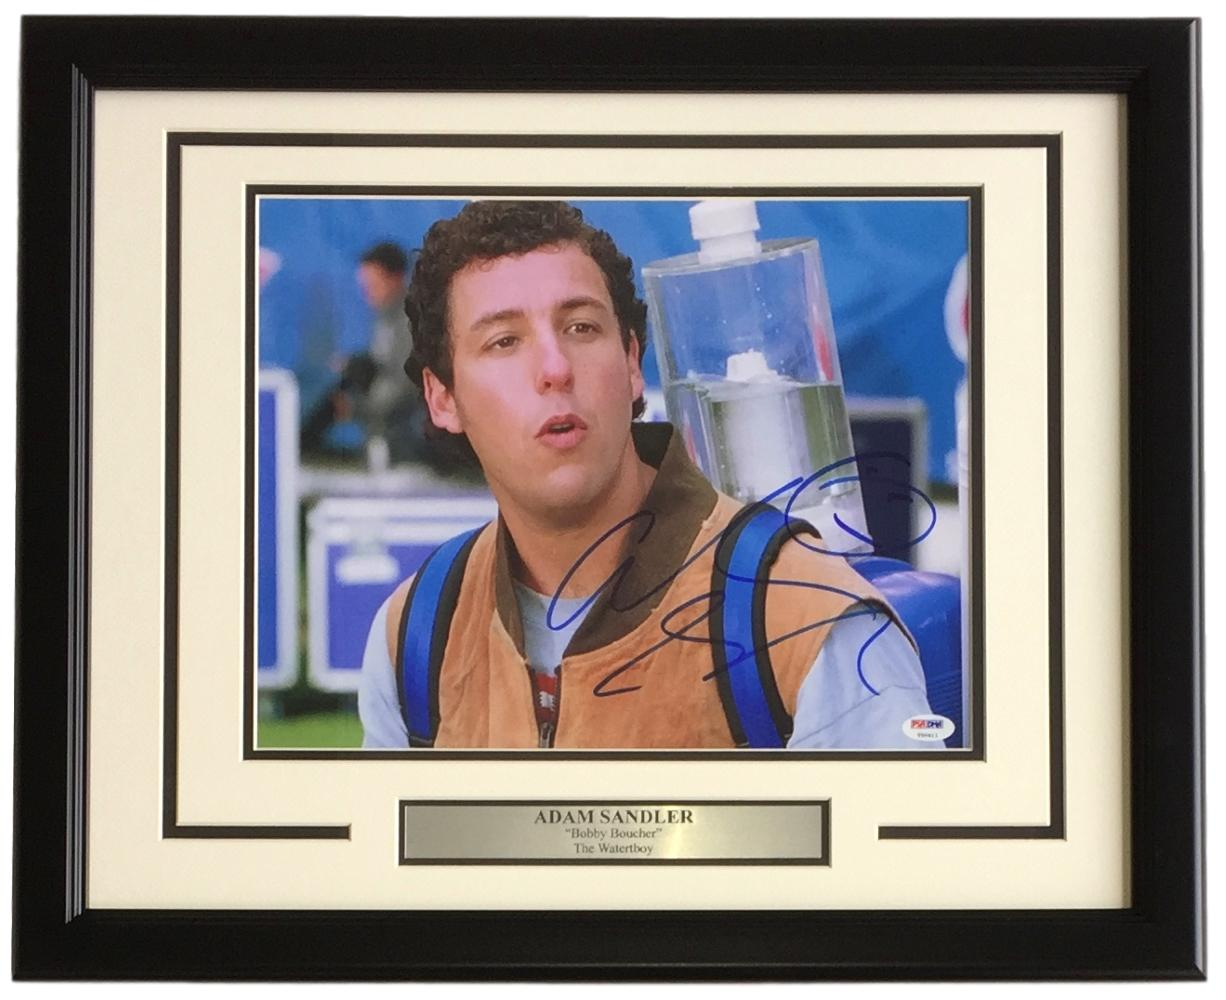 15c97b6b617 Adam Sandler Signed Framed 11x14 The Waterboy Bobby Boucher Photo PSA T50411